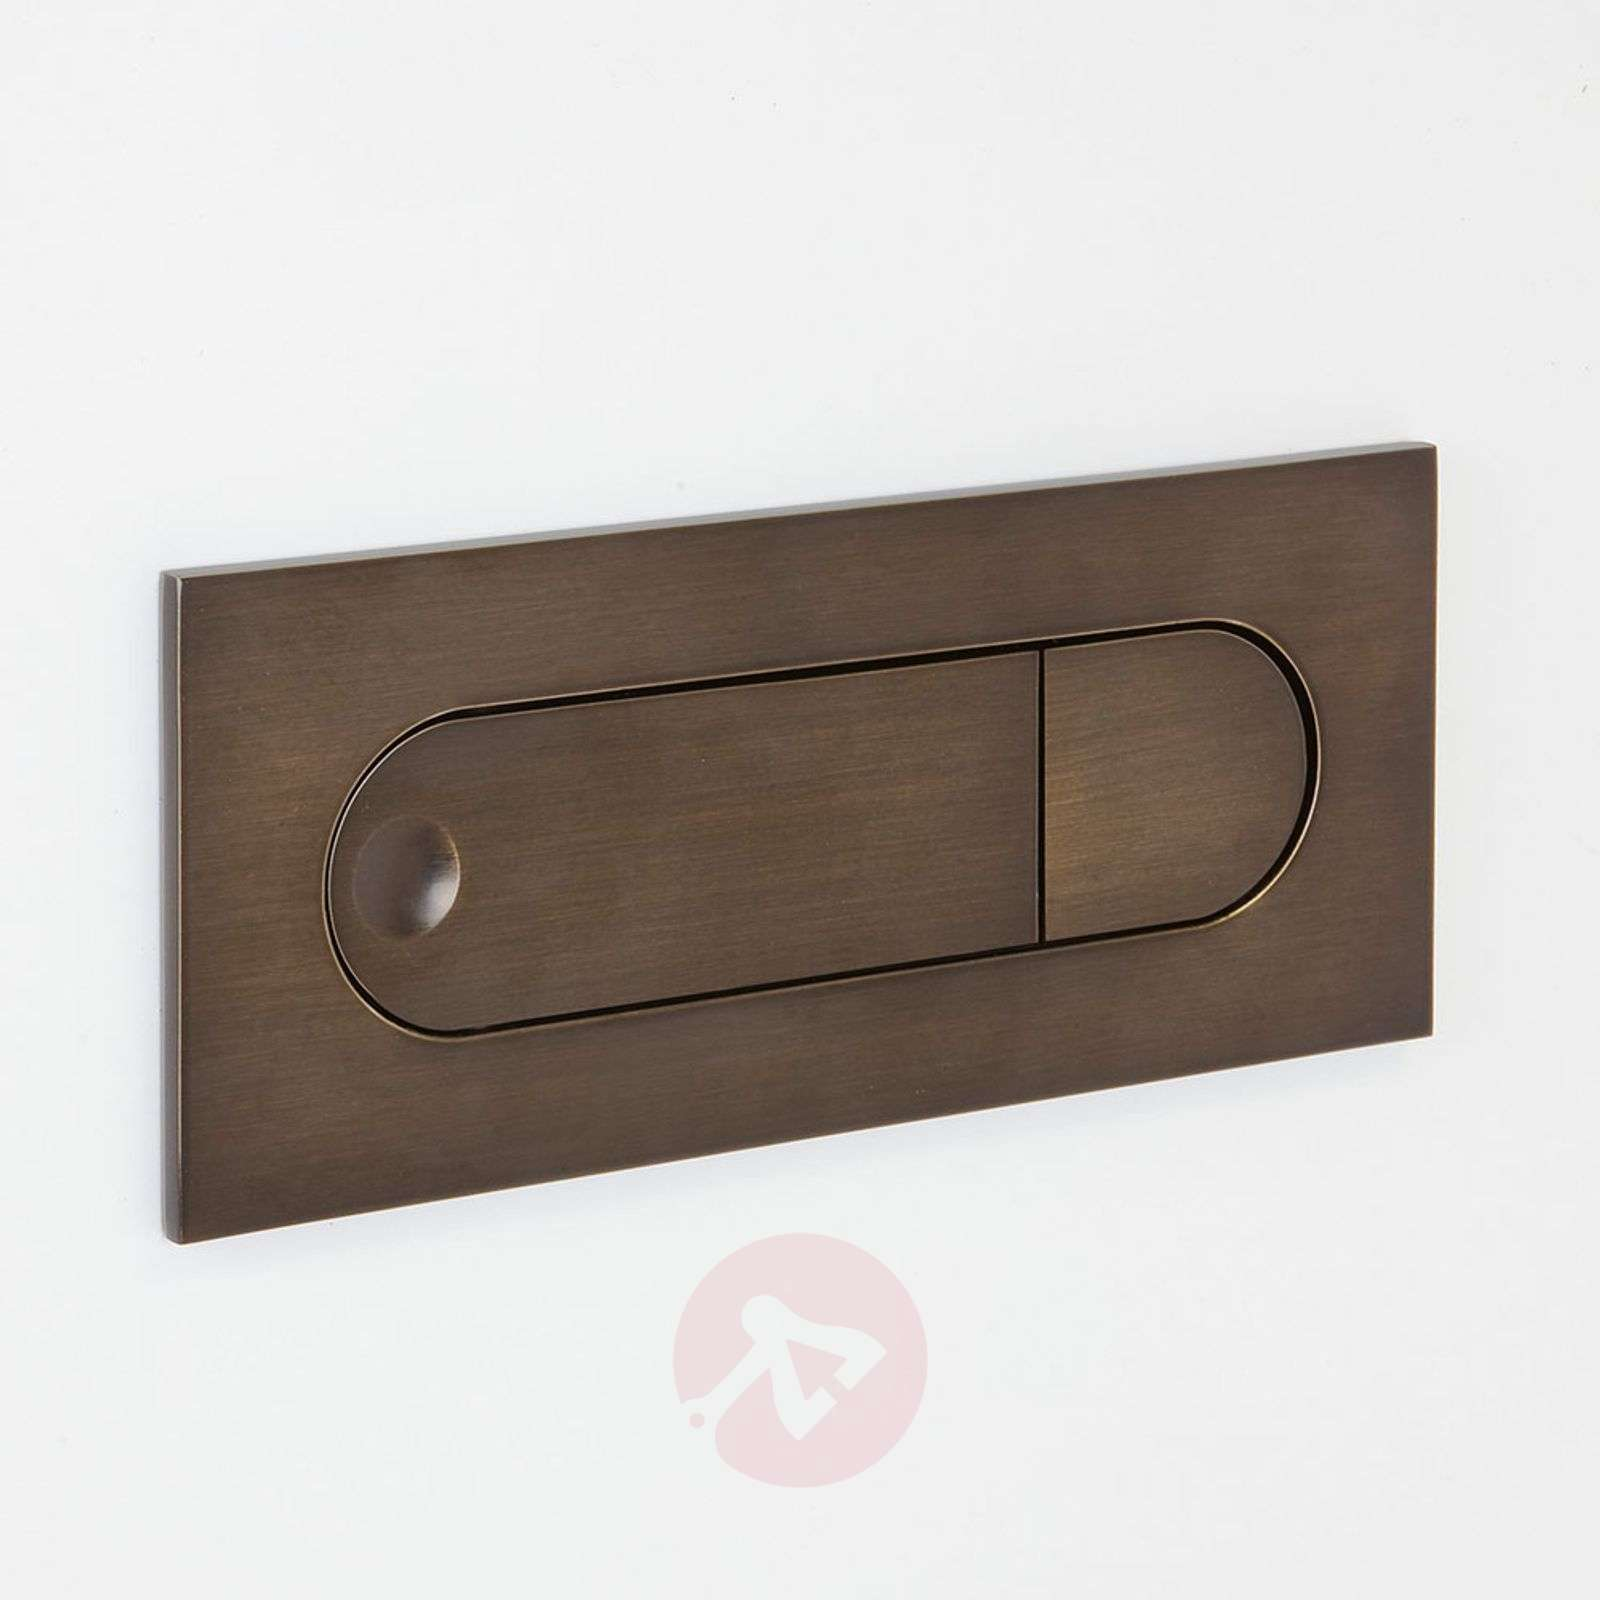 Digit LED Wall Light with Reading Arm Bronzed-1020478-03